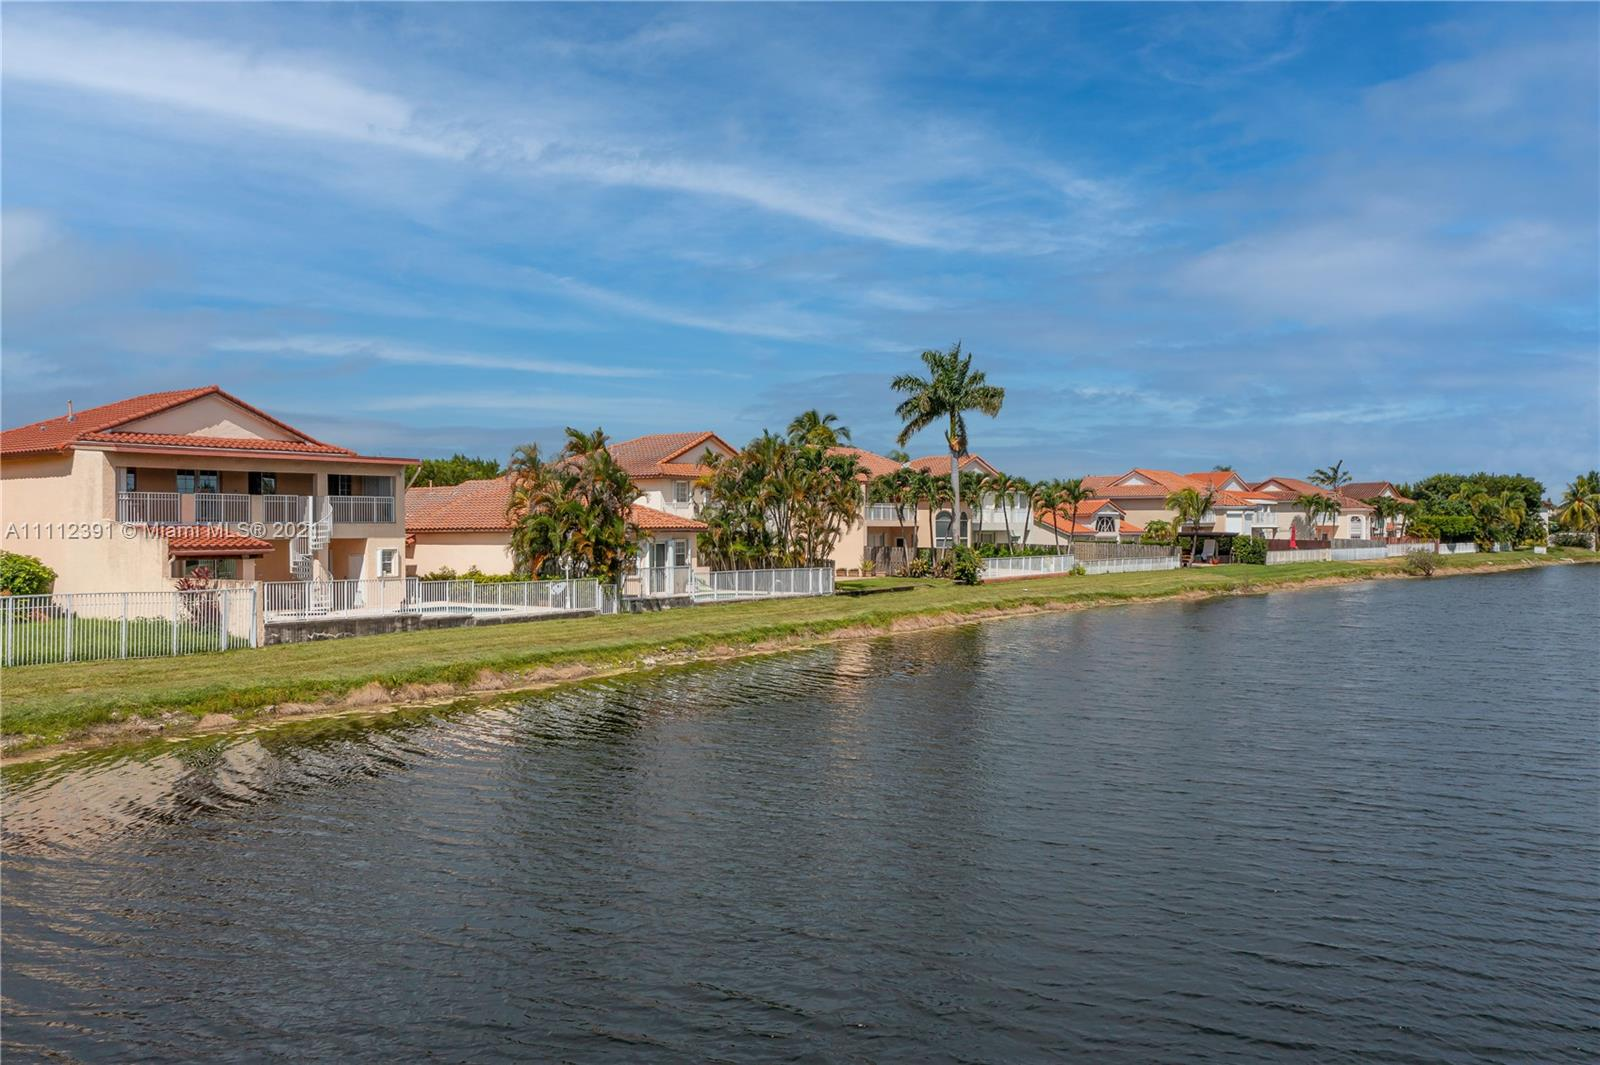 Single Family Home,For Sale,5333 NW 105th Ct, Doral, Florida 33178,Brickell,realty,broker,condos near me